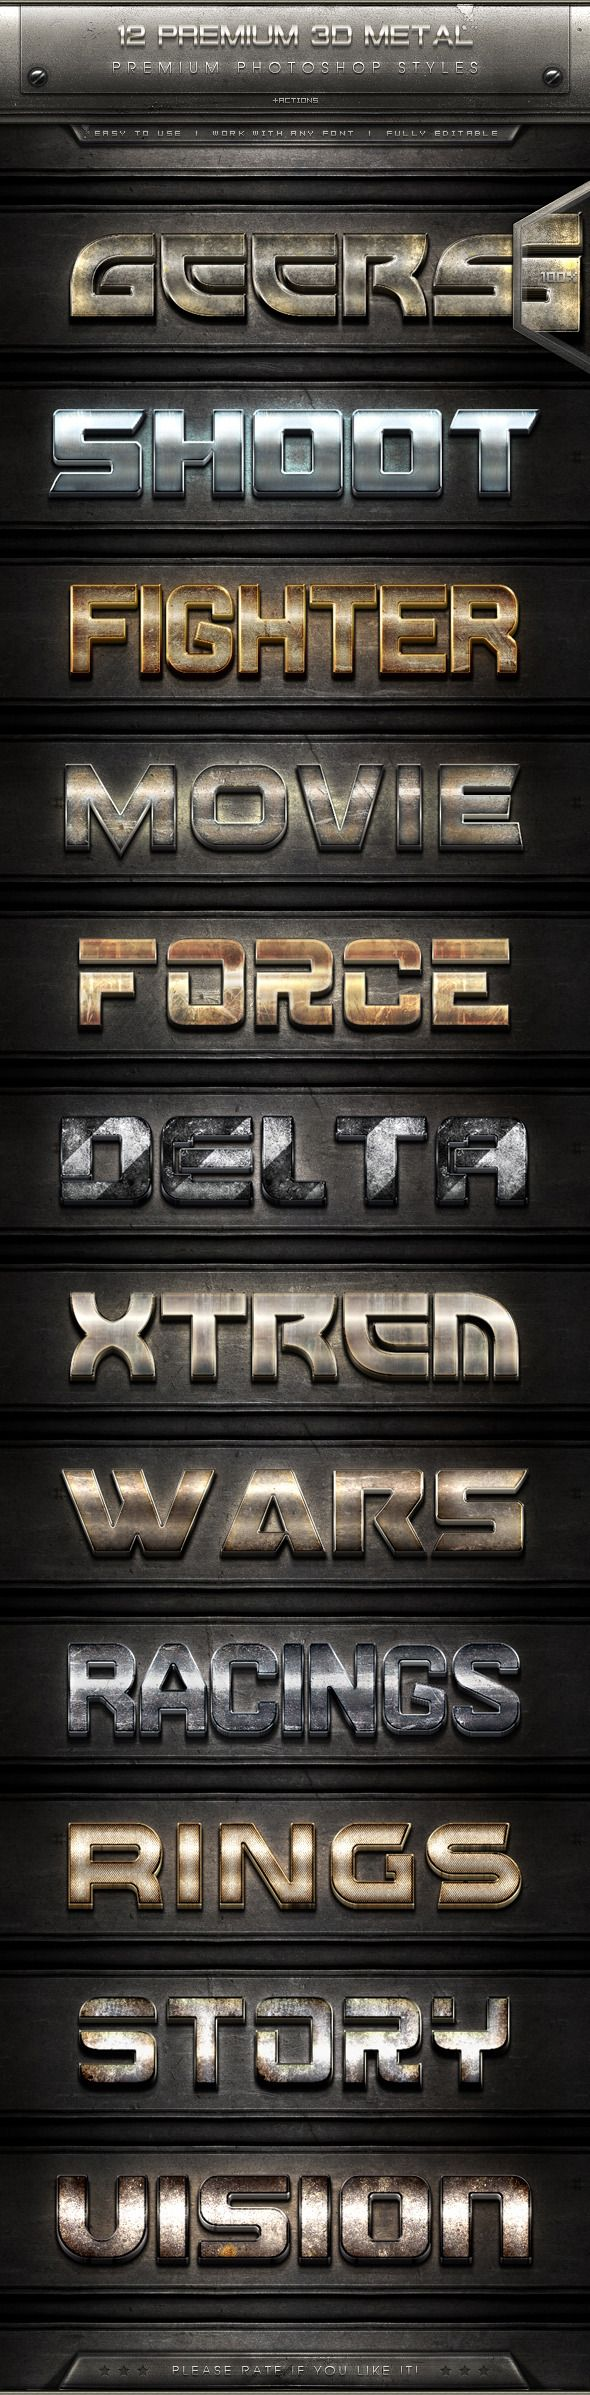 12 Premium 3D Metal Text Effect Styles + Actions - Text Effects Styles